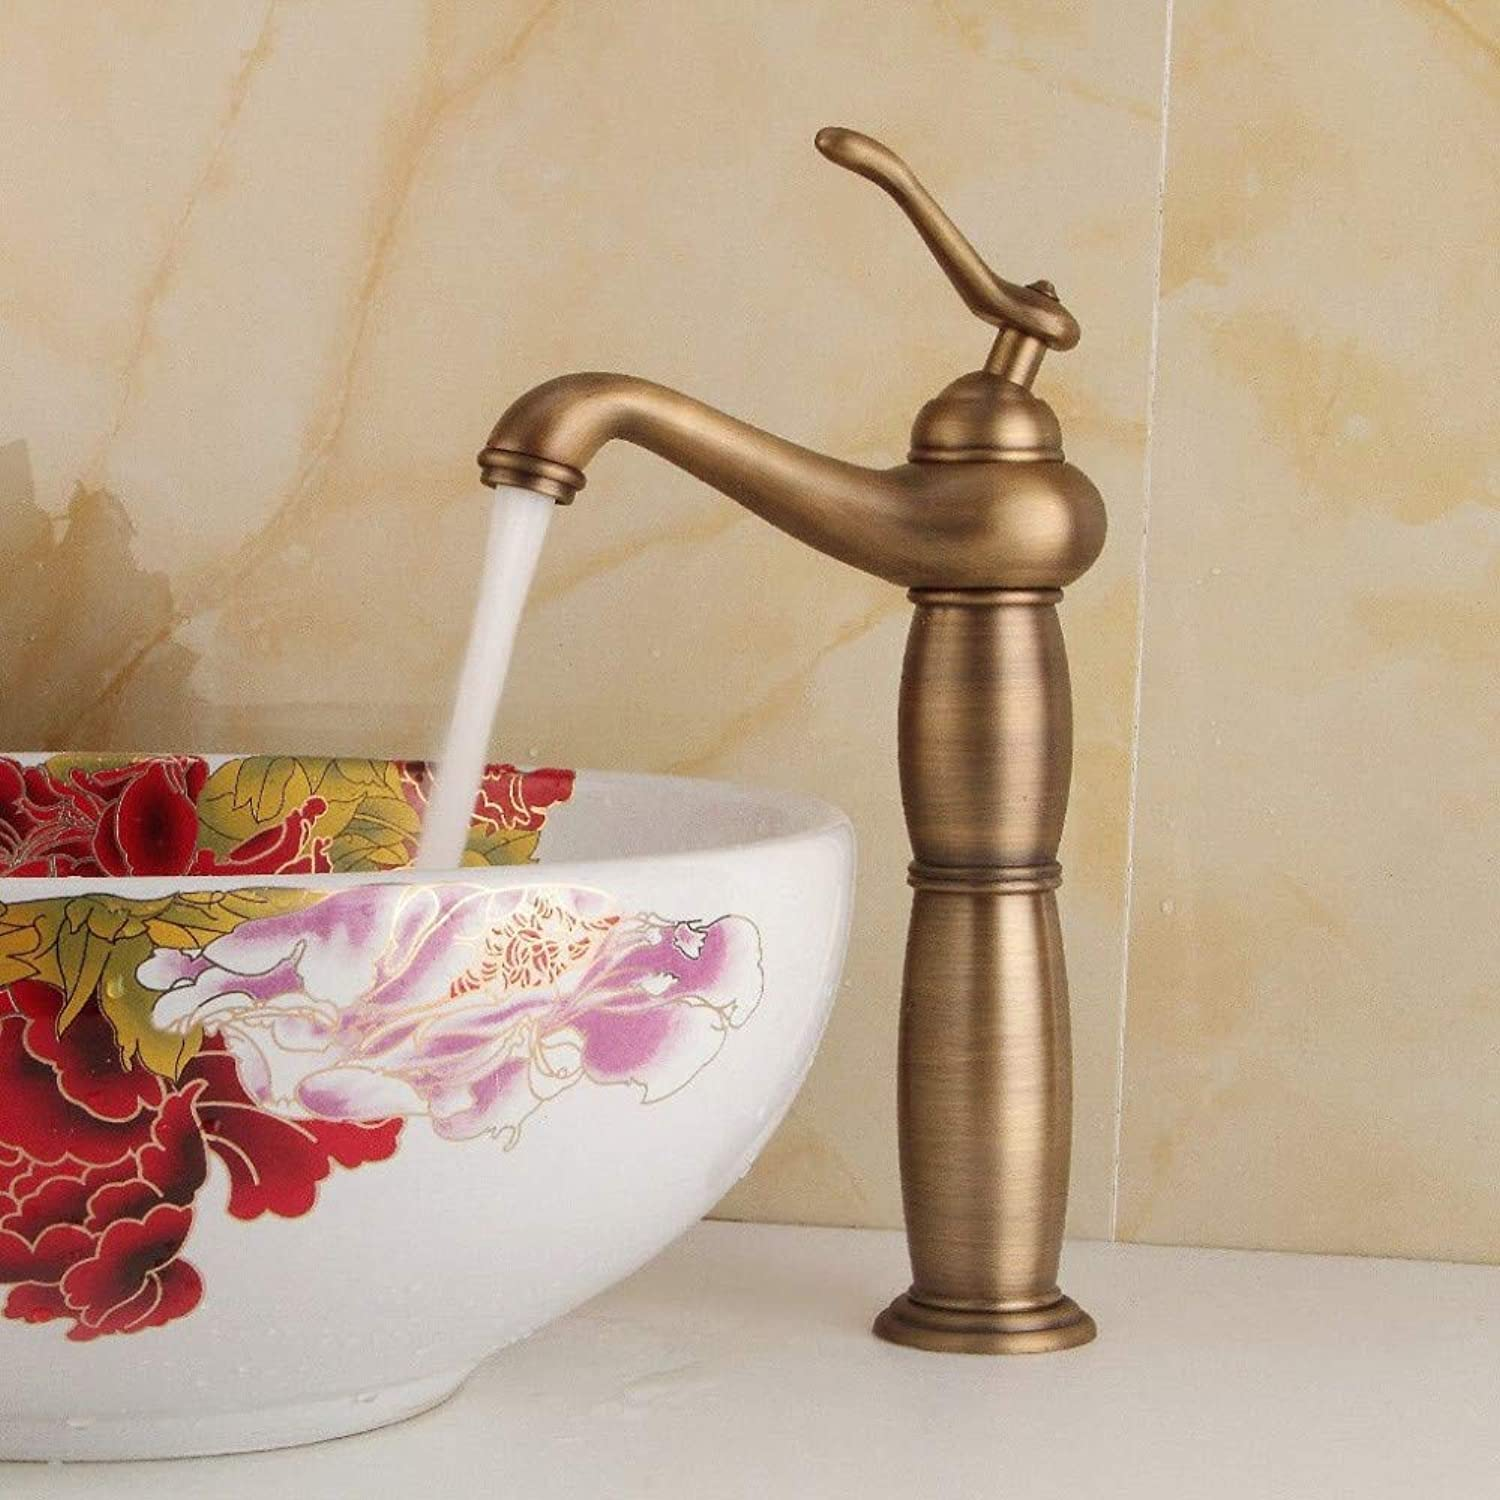 Faucet Spout Bathroom Sink Faucet Sink Mixer Tap for Lavatory Vanity Sink Faucethot and Cold Water Brass Retro Faucet Basin Mixer Tap